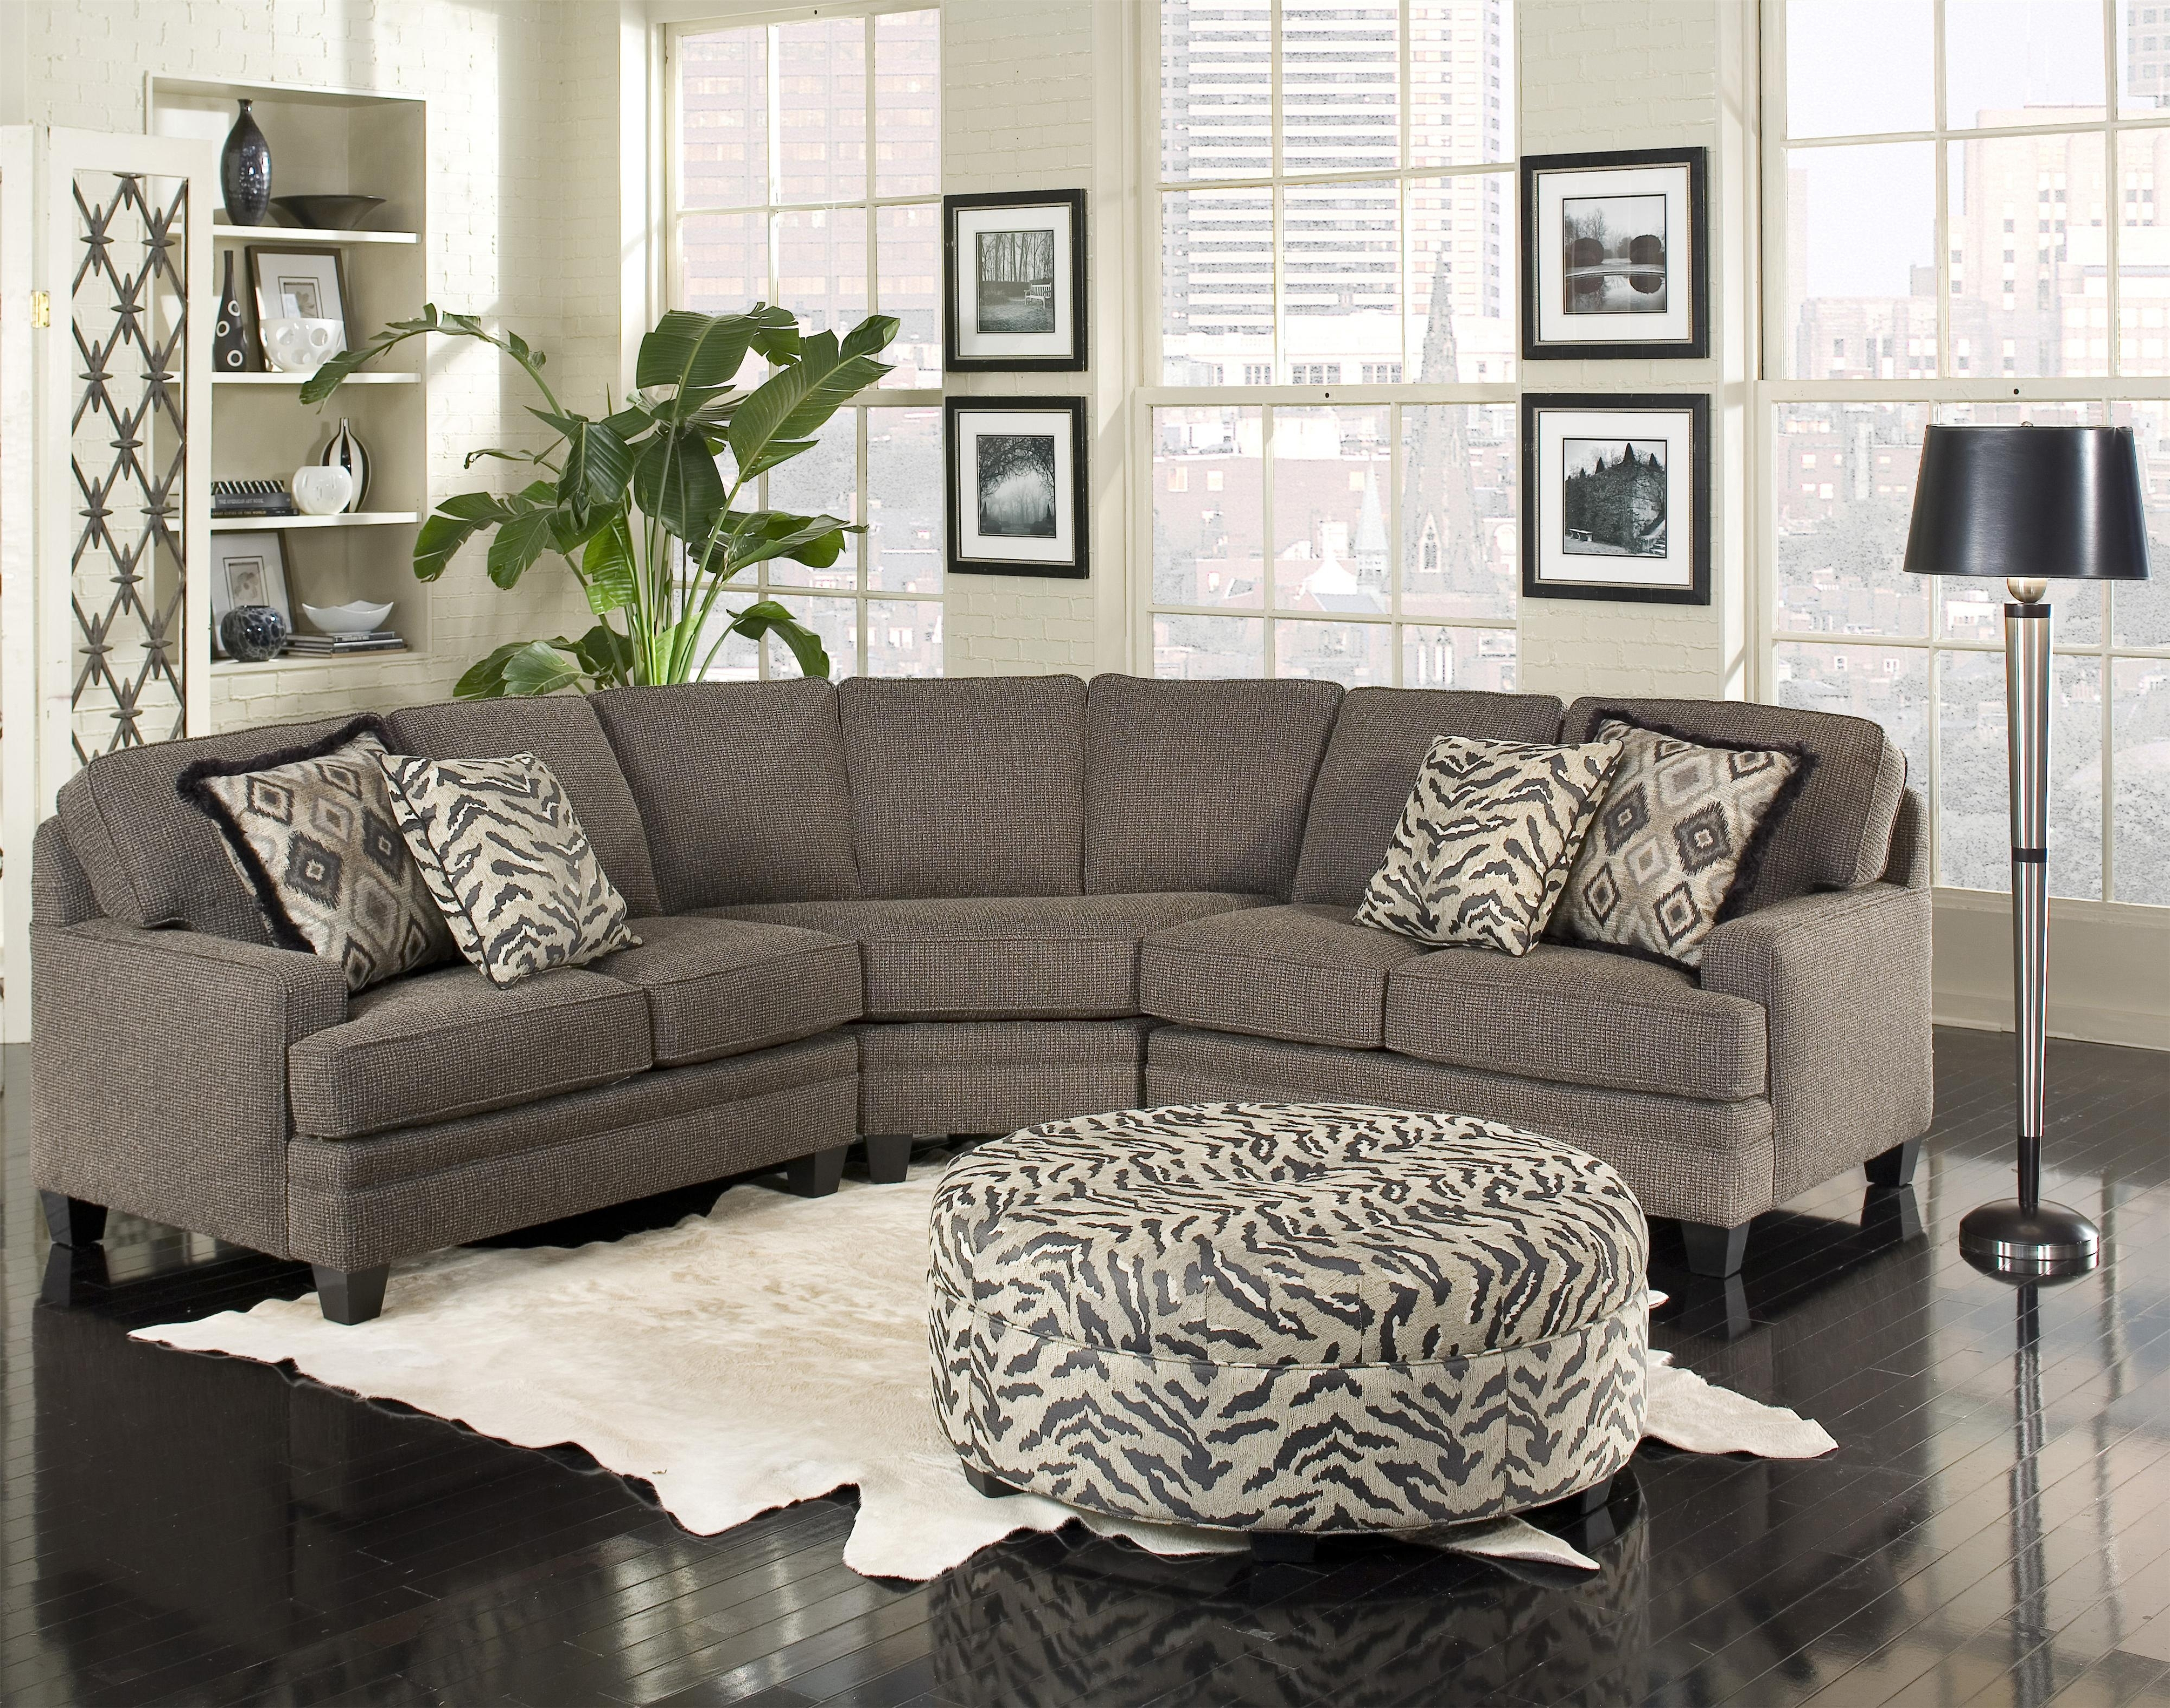 Build Your Own (5000 Series) Five Person Sectional Sofa With For Harrisburg Pa Sectional Sofas (View 2 of 10)